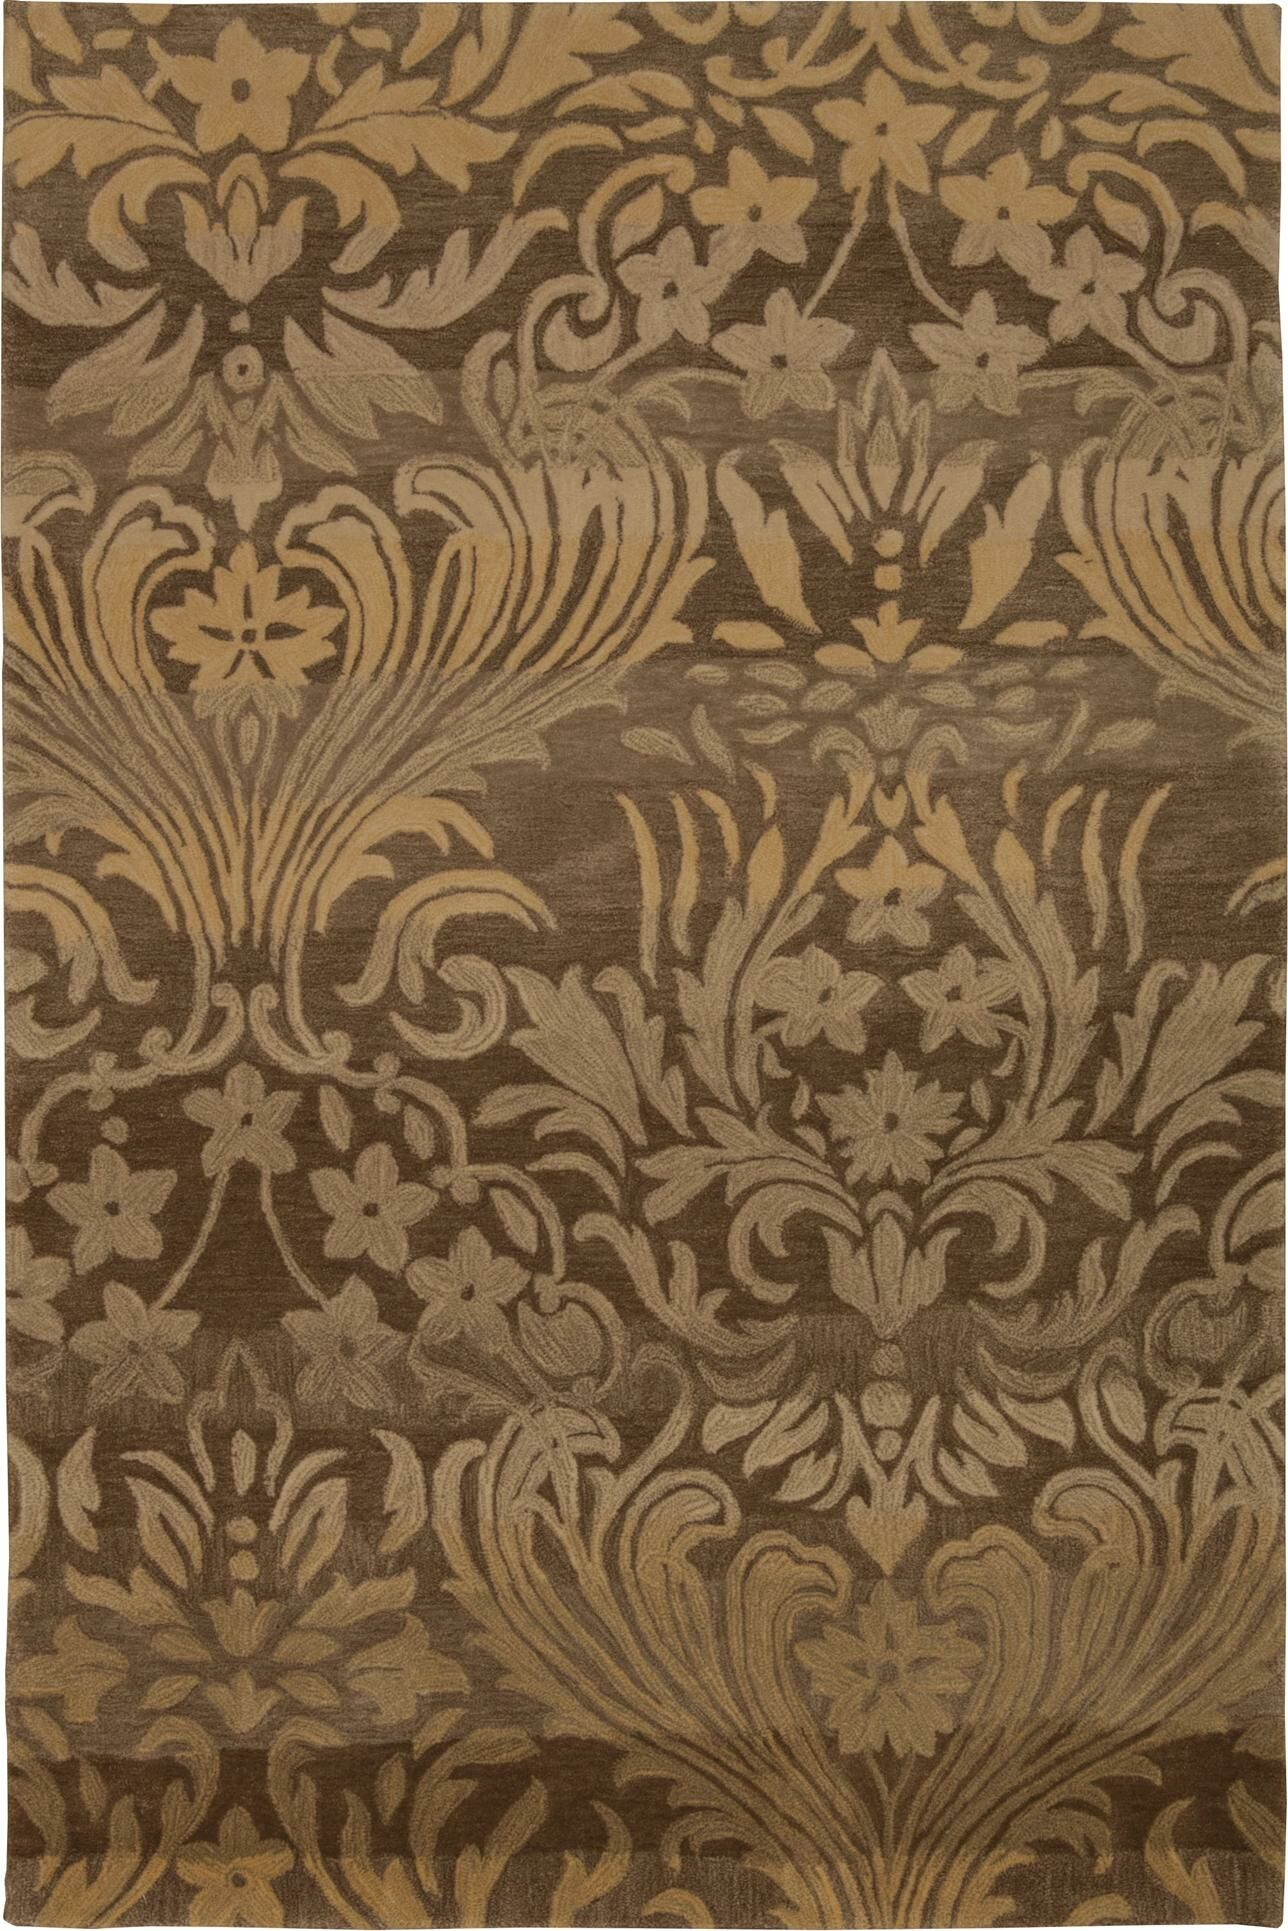 Porterfield Hand-Tufted Latte Area Rug Rug Size: Rectangle 8' x 10'6